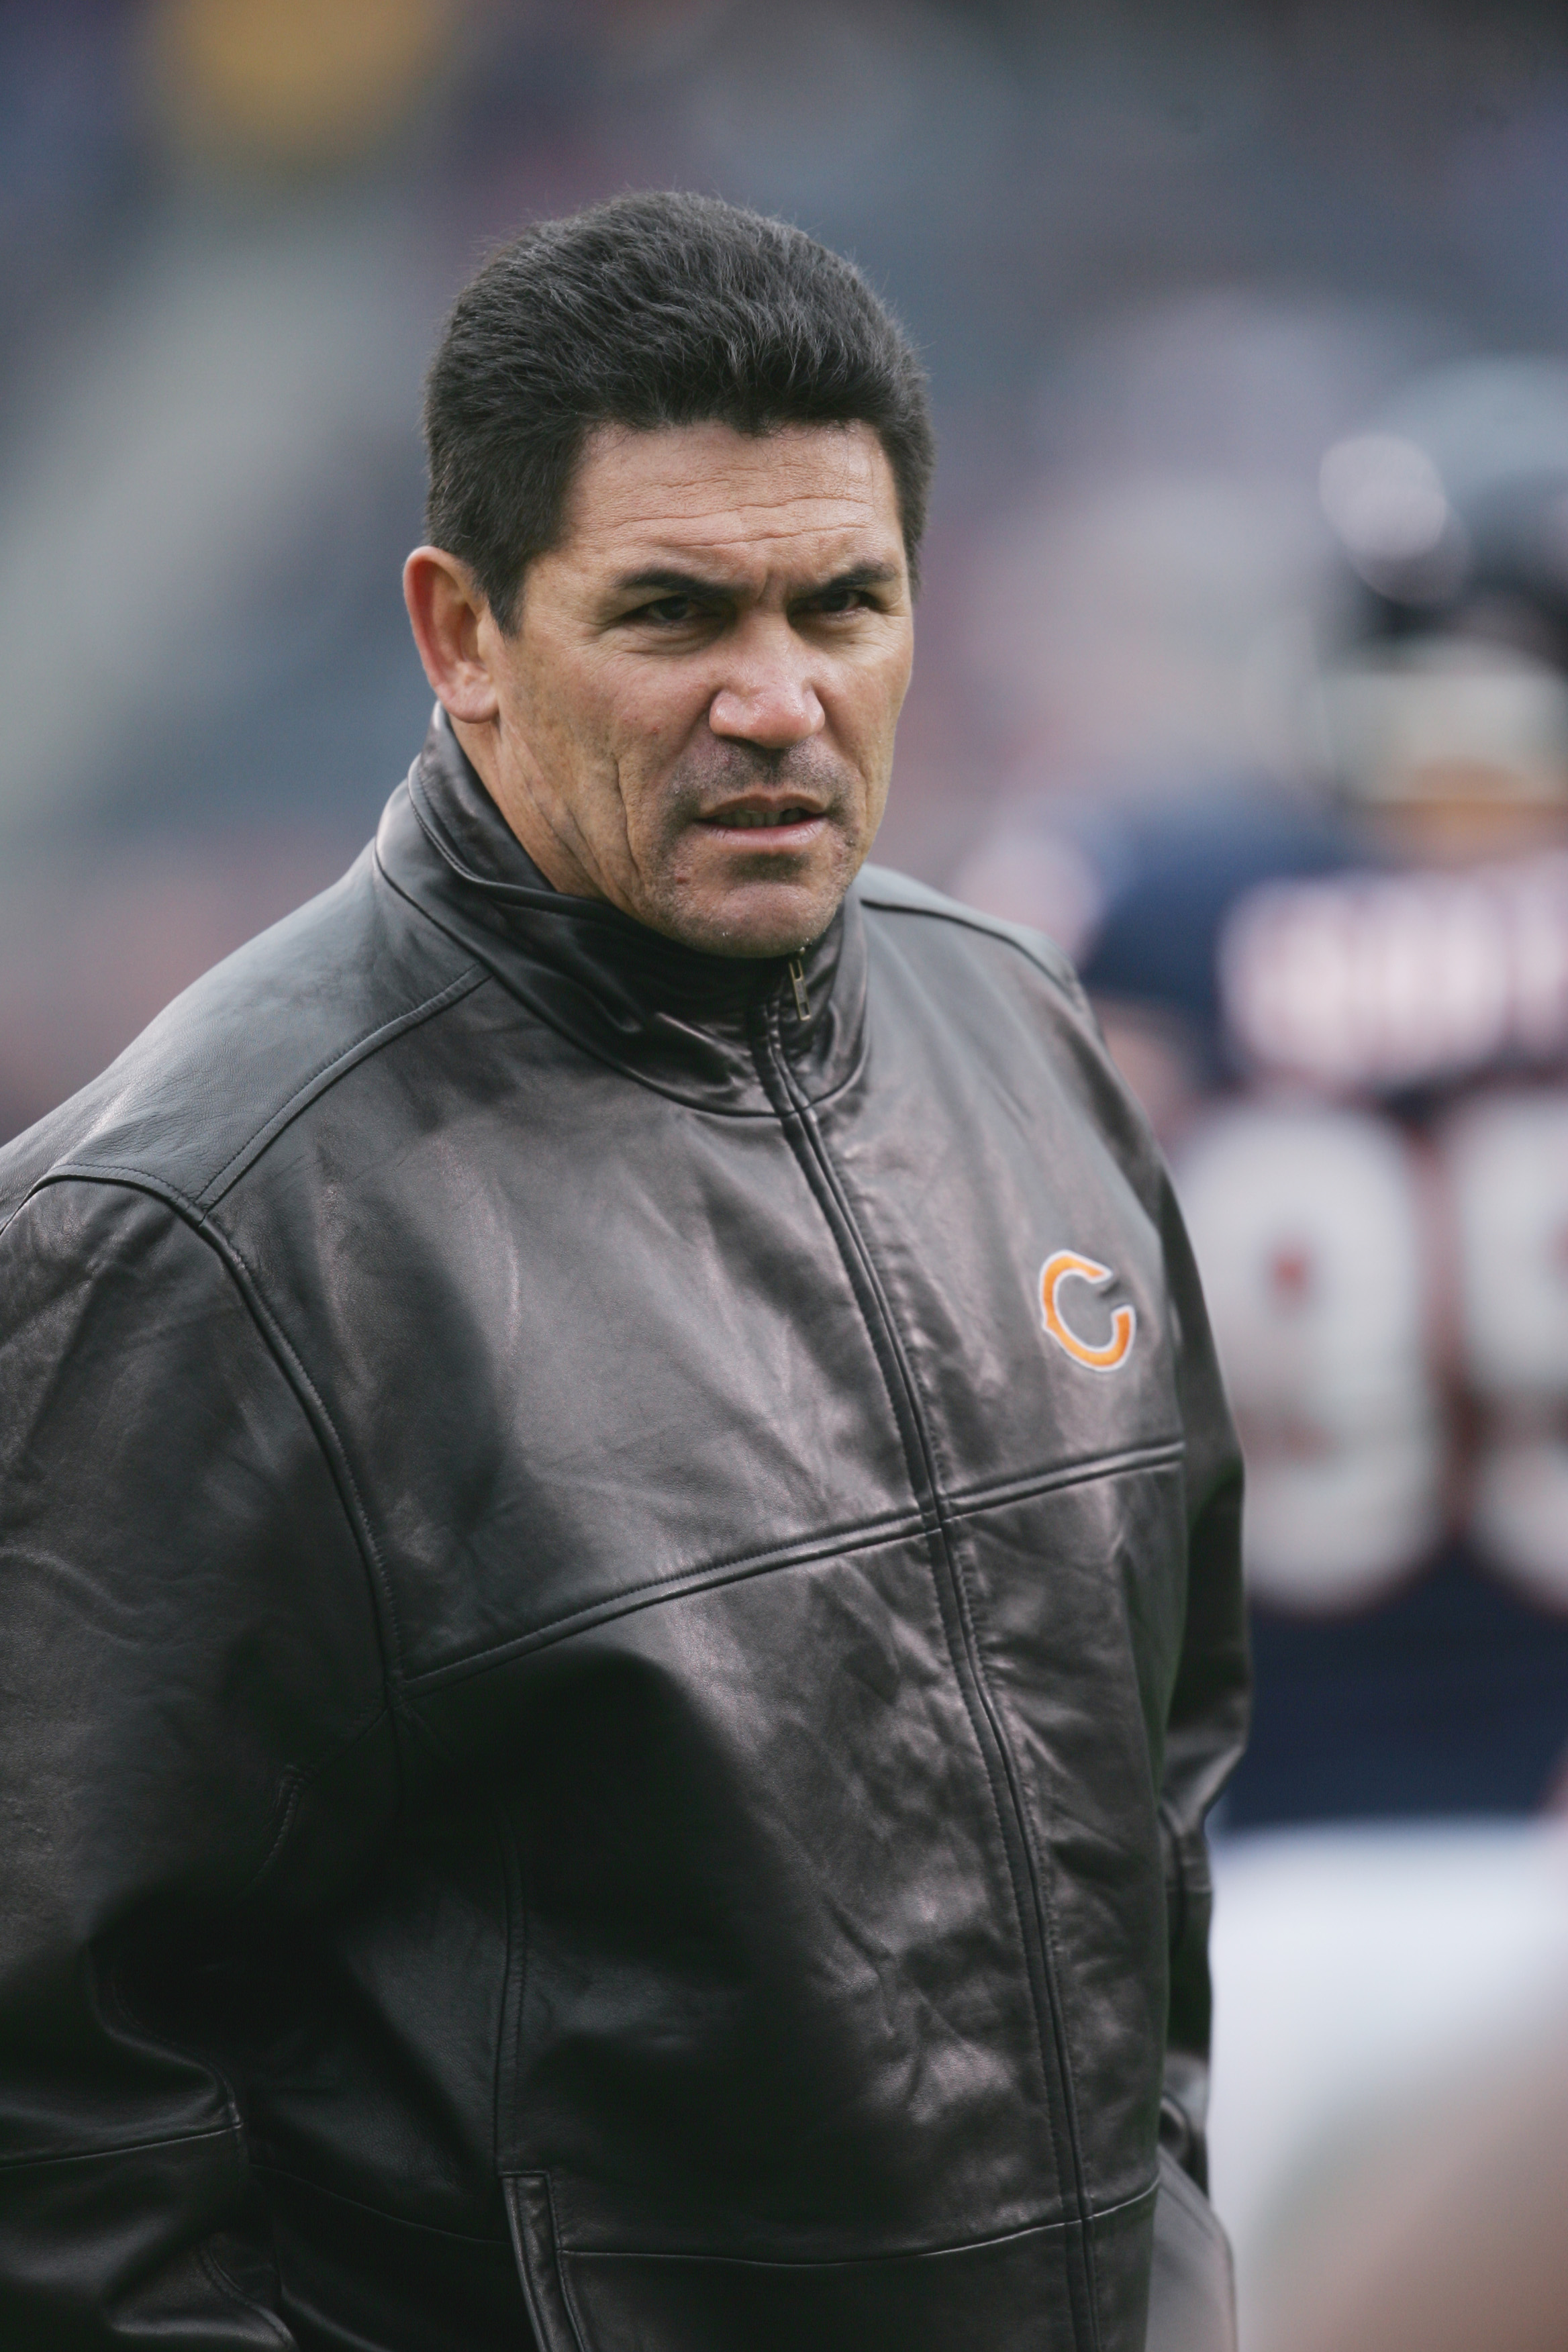 CHICAGO - NOVEMBER 20:  Defensive coordinator Ron Rivera of the Chicago Bears looks on against the Carolina Panthers at Soldier Field on November 20, 2005 in Chicago, Illinois. The Bears defeated the Panthers 13-3. (Photo by Jonathan Daniel/Getty Images)